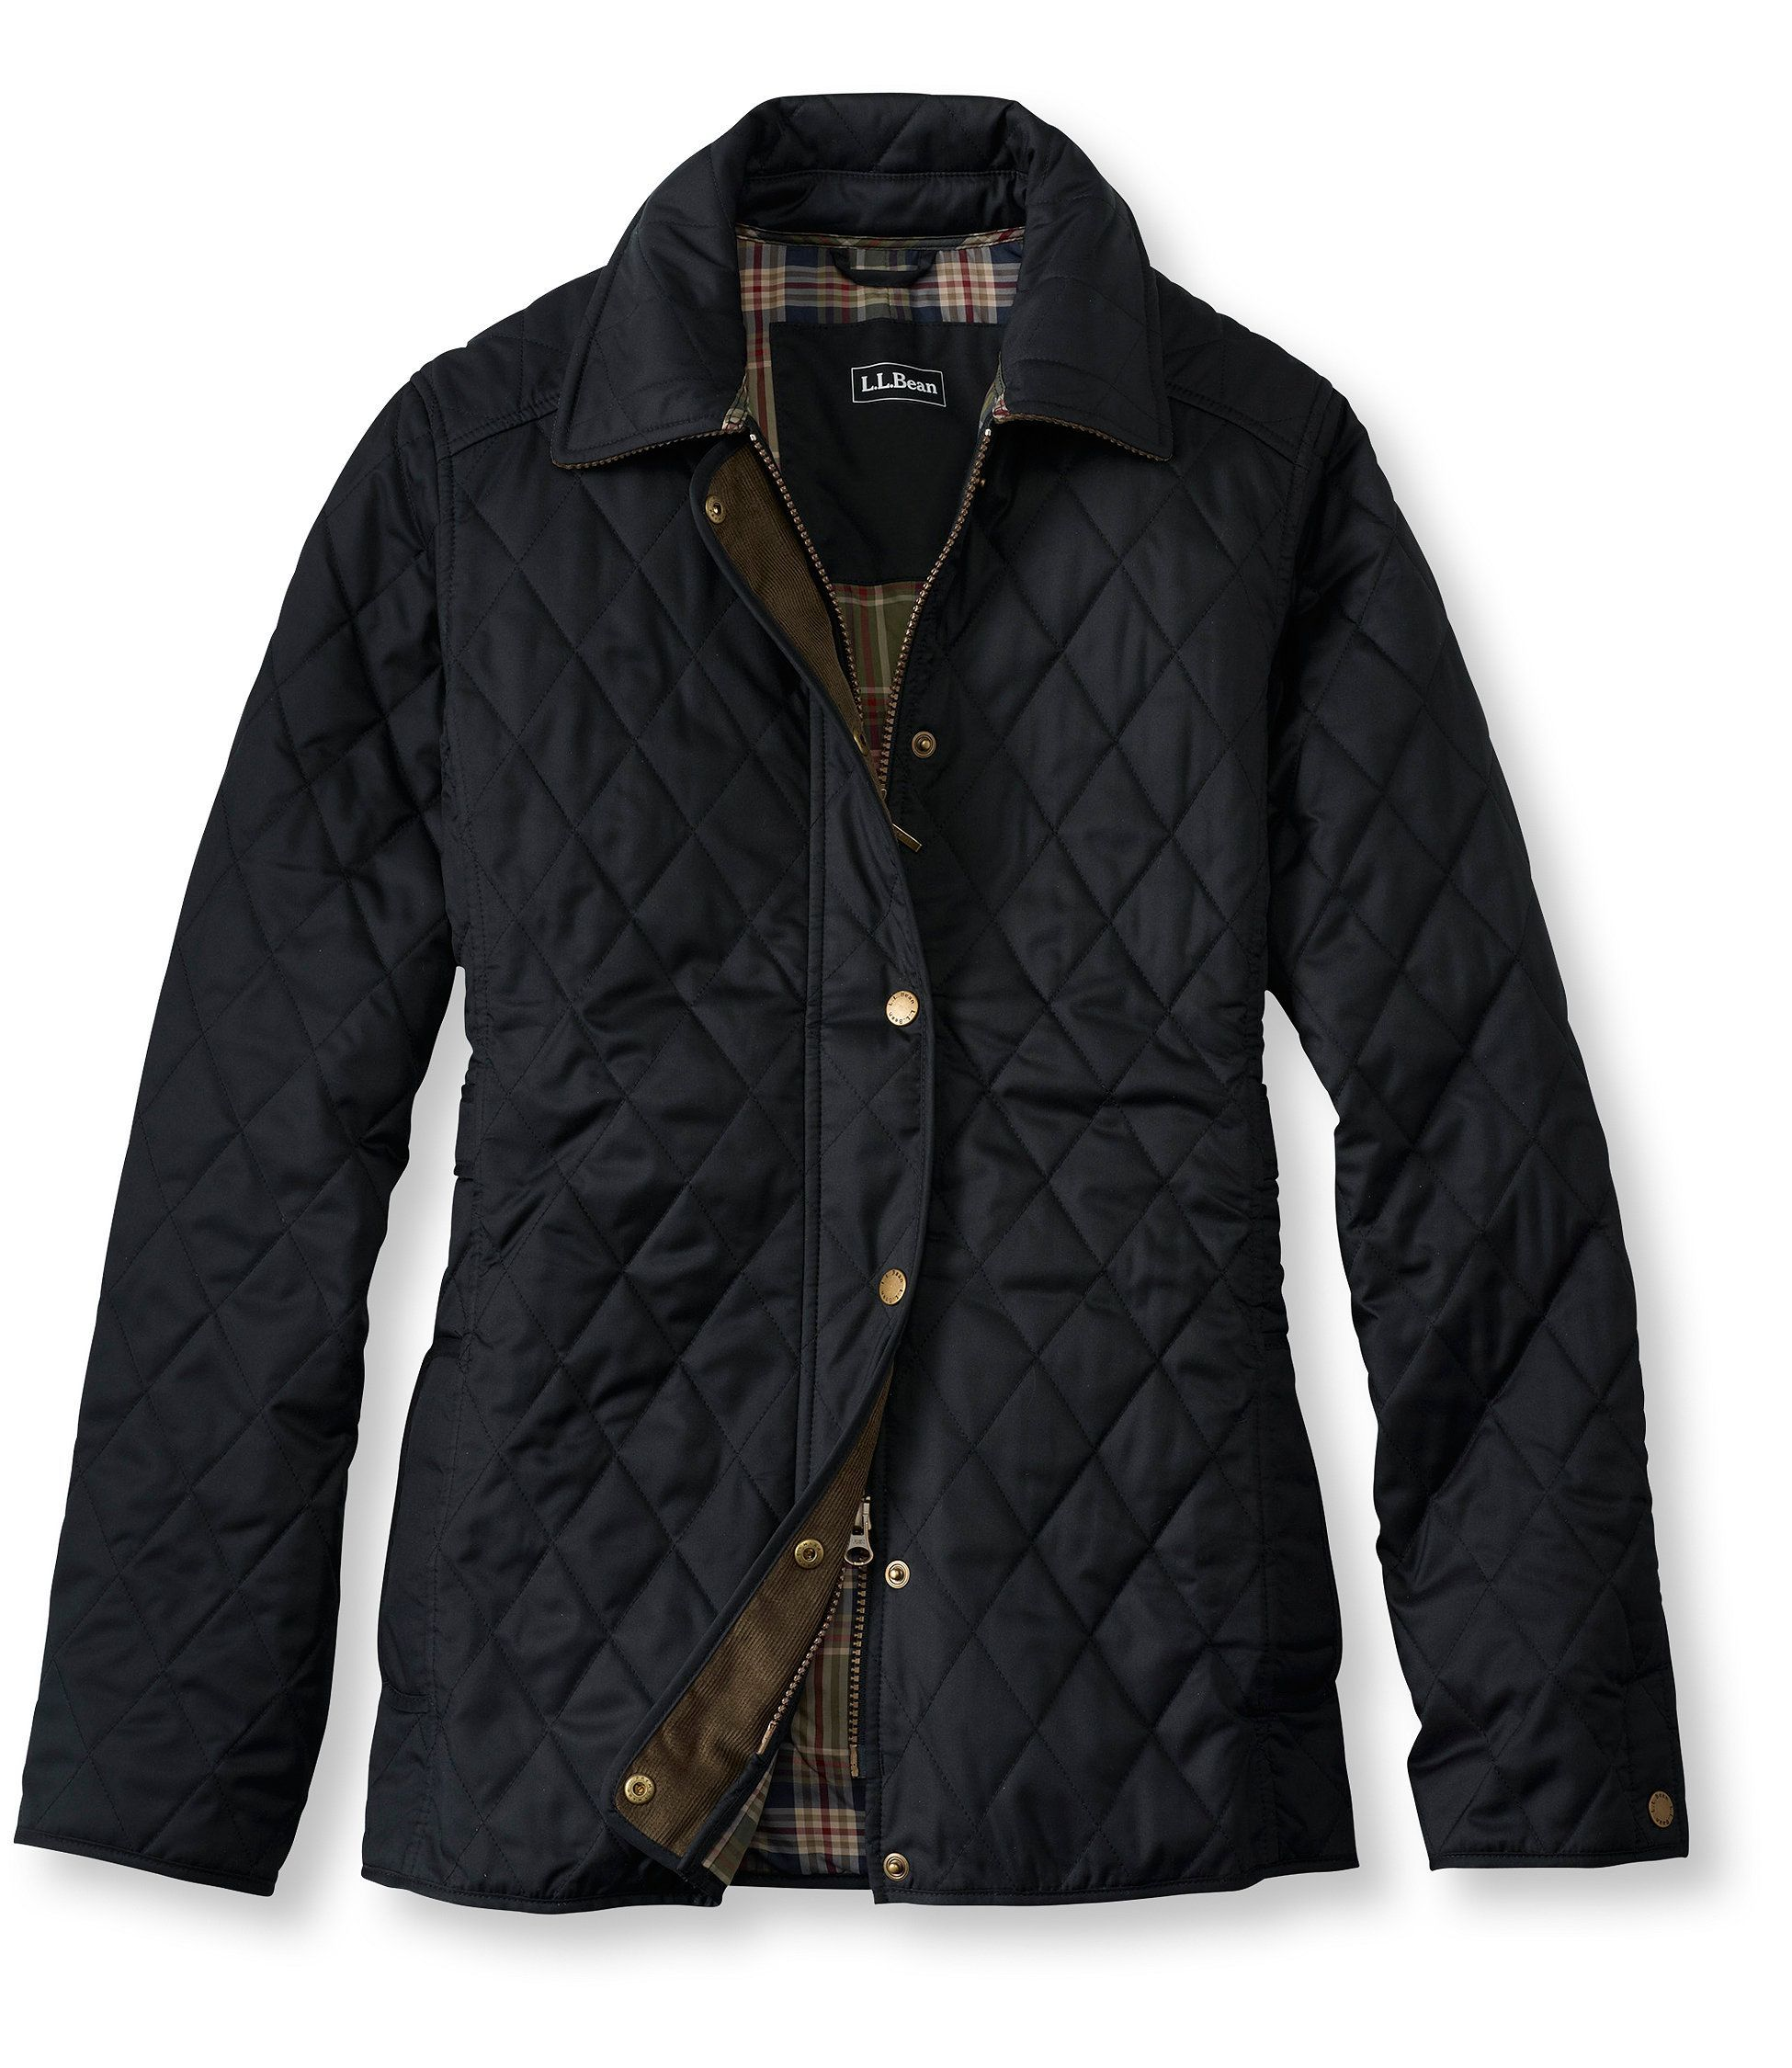 Mens quilted jacket next - My Favorite Fall Jacket Riding Jacket L L Bean